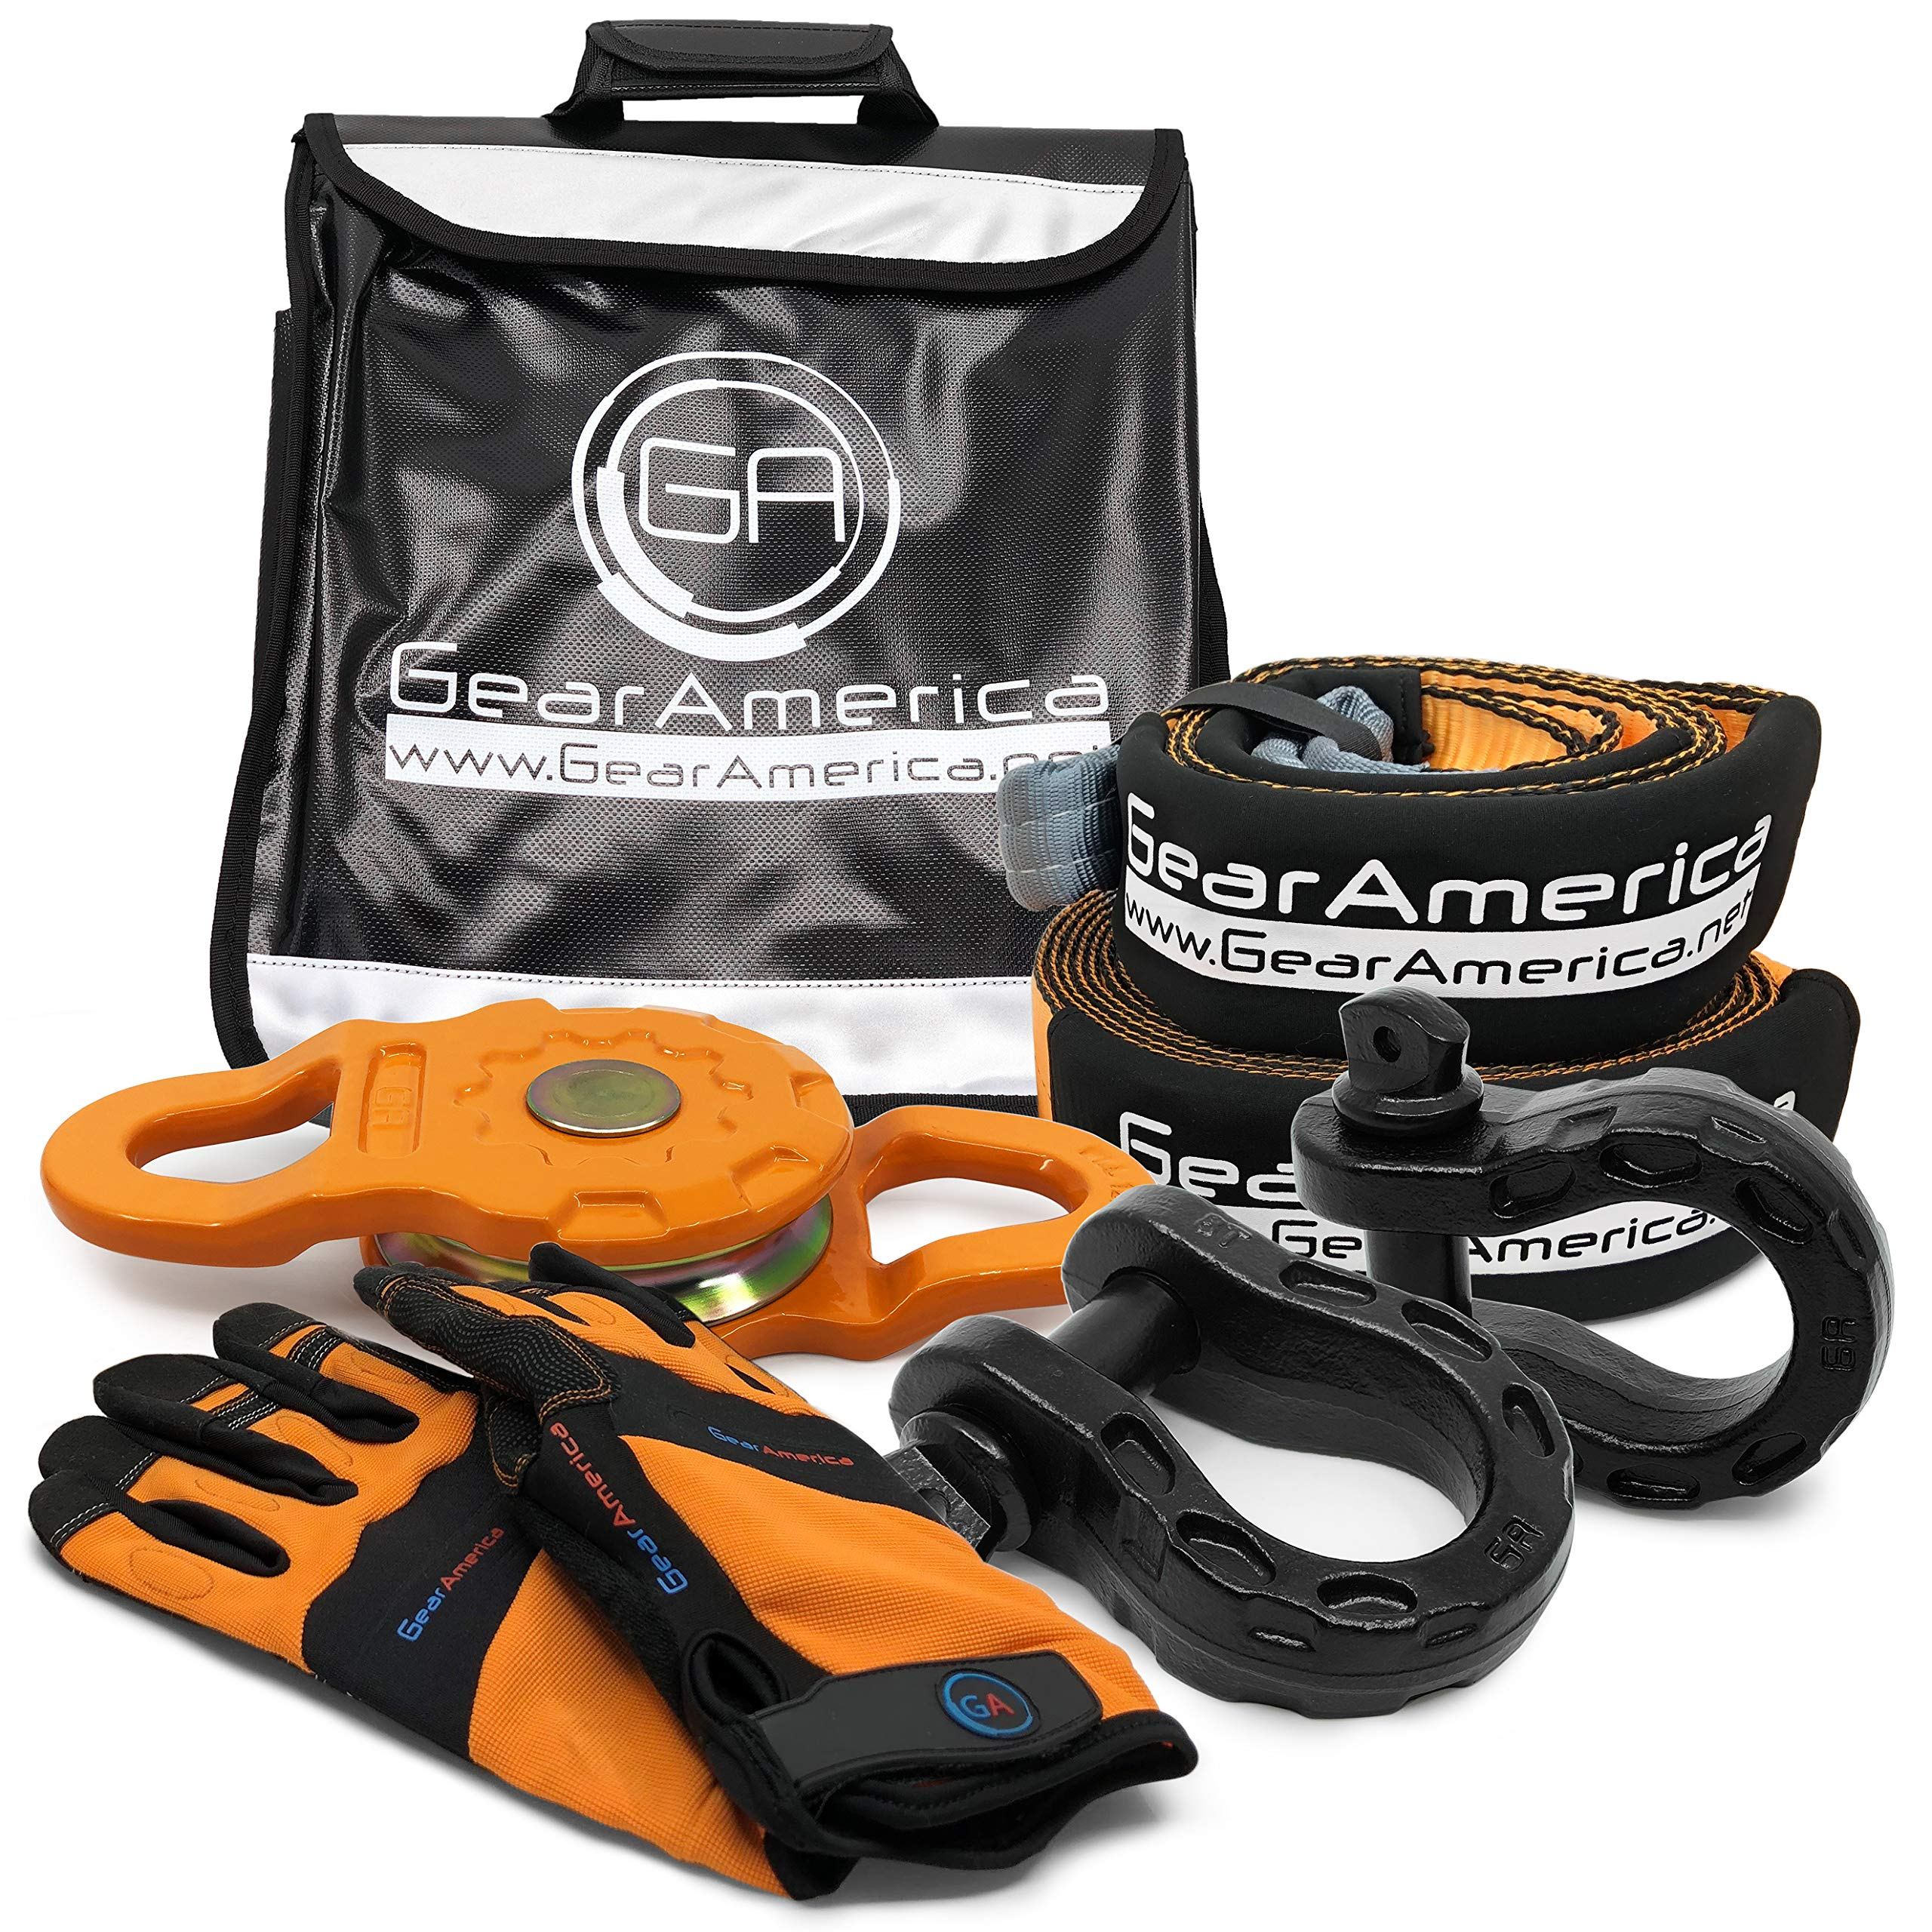 GearAmerica Off-Road Recovery Mega Kit | Tow Strap + Tree Saver + Mega Snatch Block Pulley + Black Mega D-Ring Shackles + Winch Line Dampener Bag + Recovery Gloves | Ultimate 4x4 Winching Accessories by GearAmerica